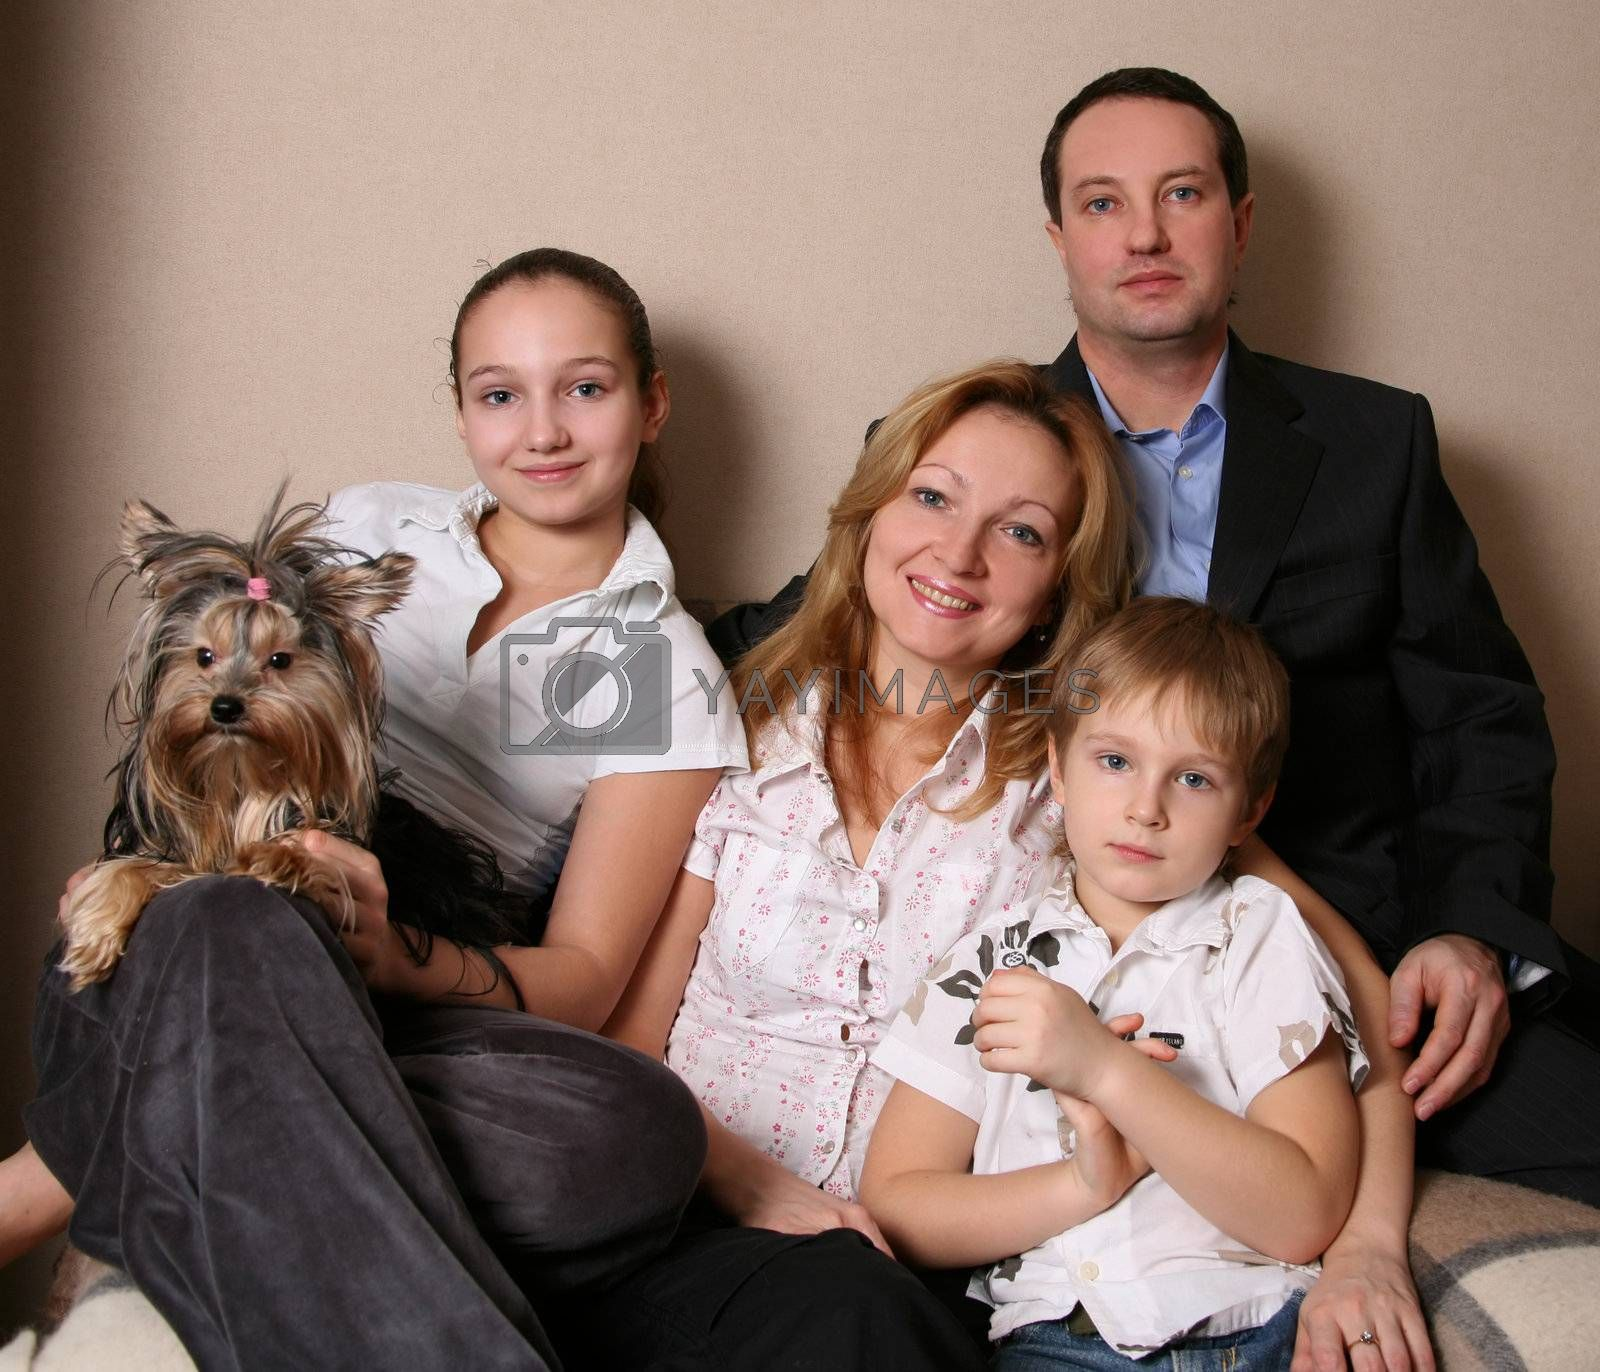 Mum, daddy, two children and yorkshire terrier on a sofa